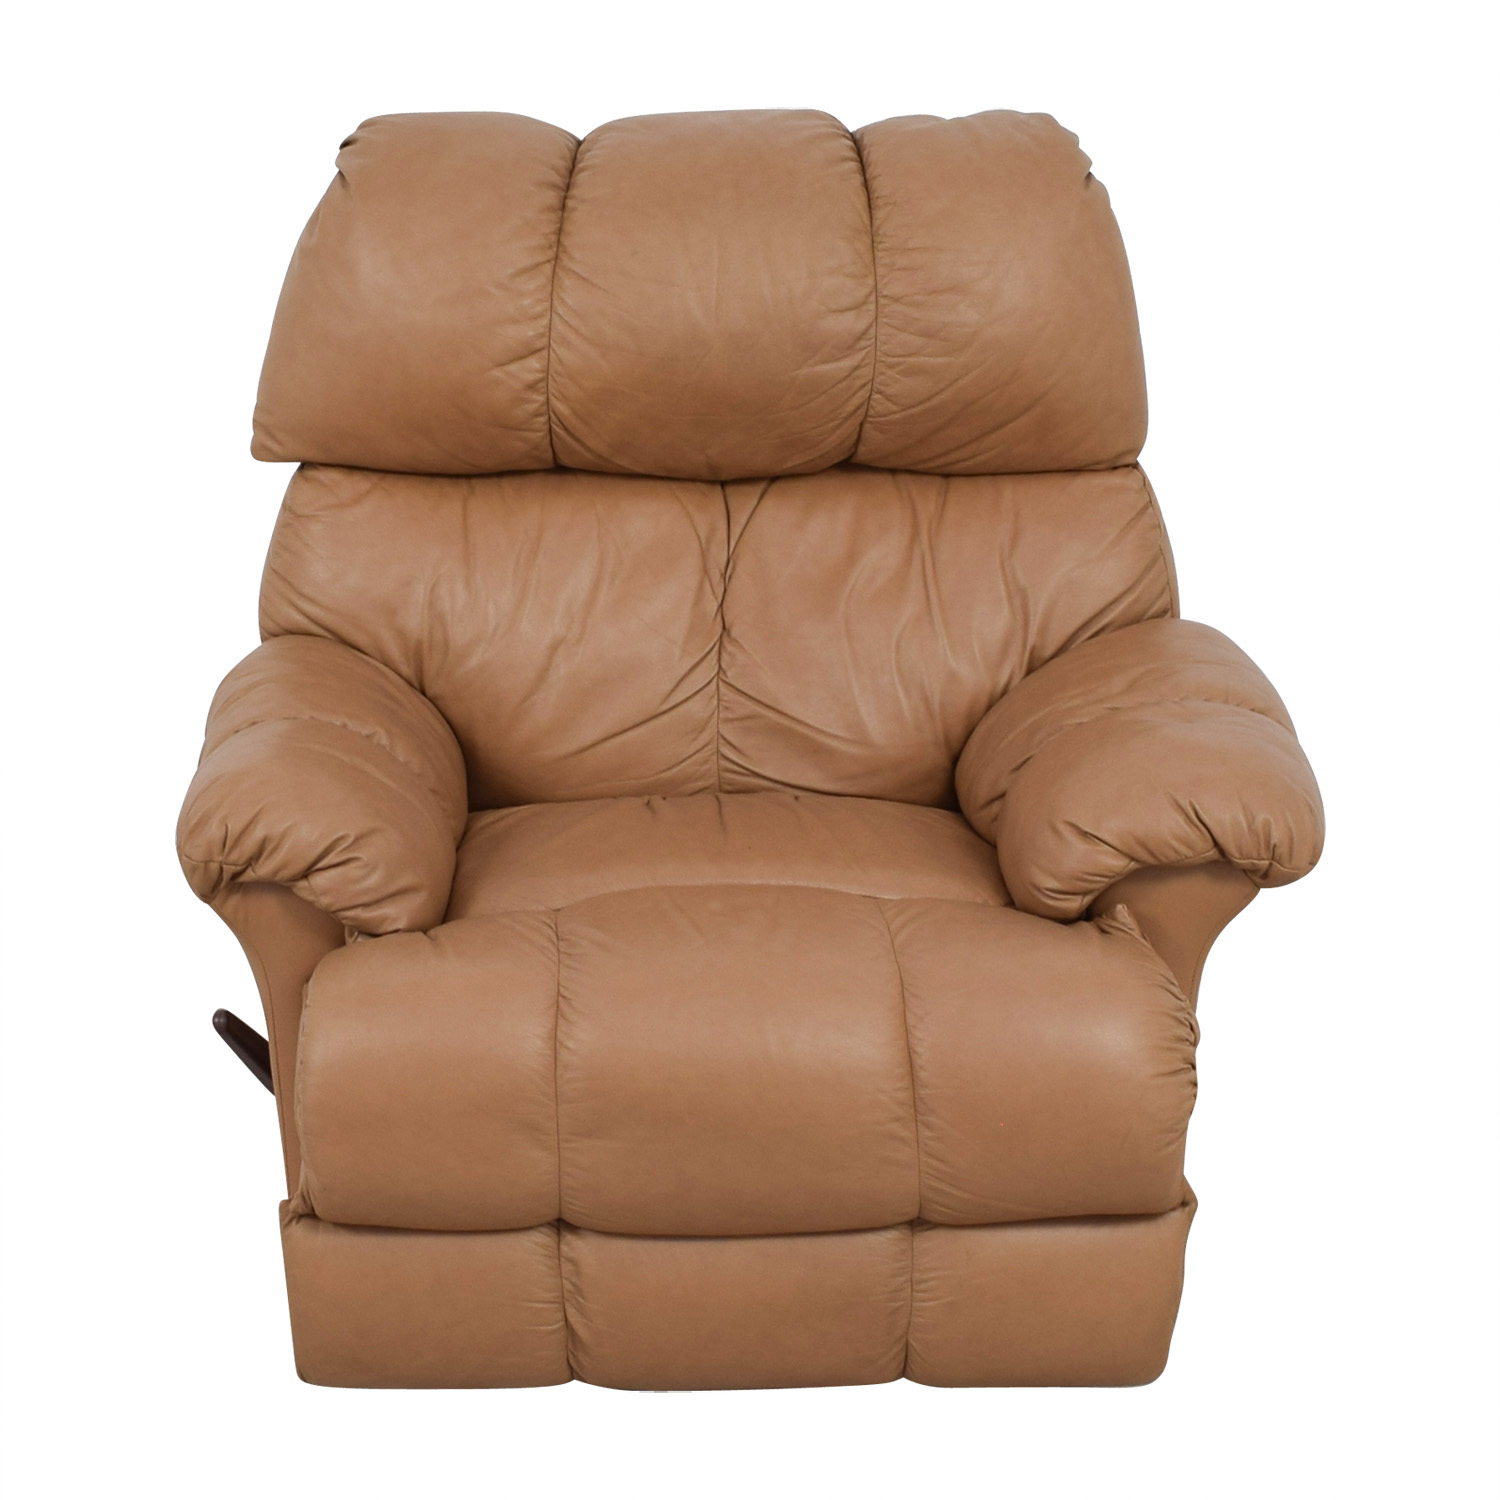 Charmant ... Tan Leather Reclining Chair Second Hand ...